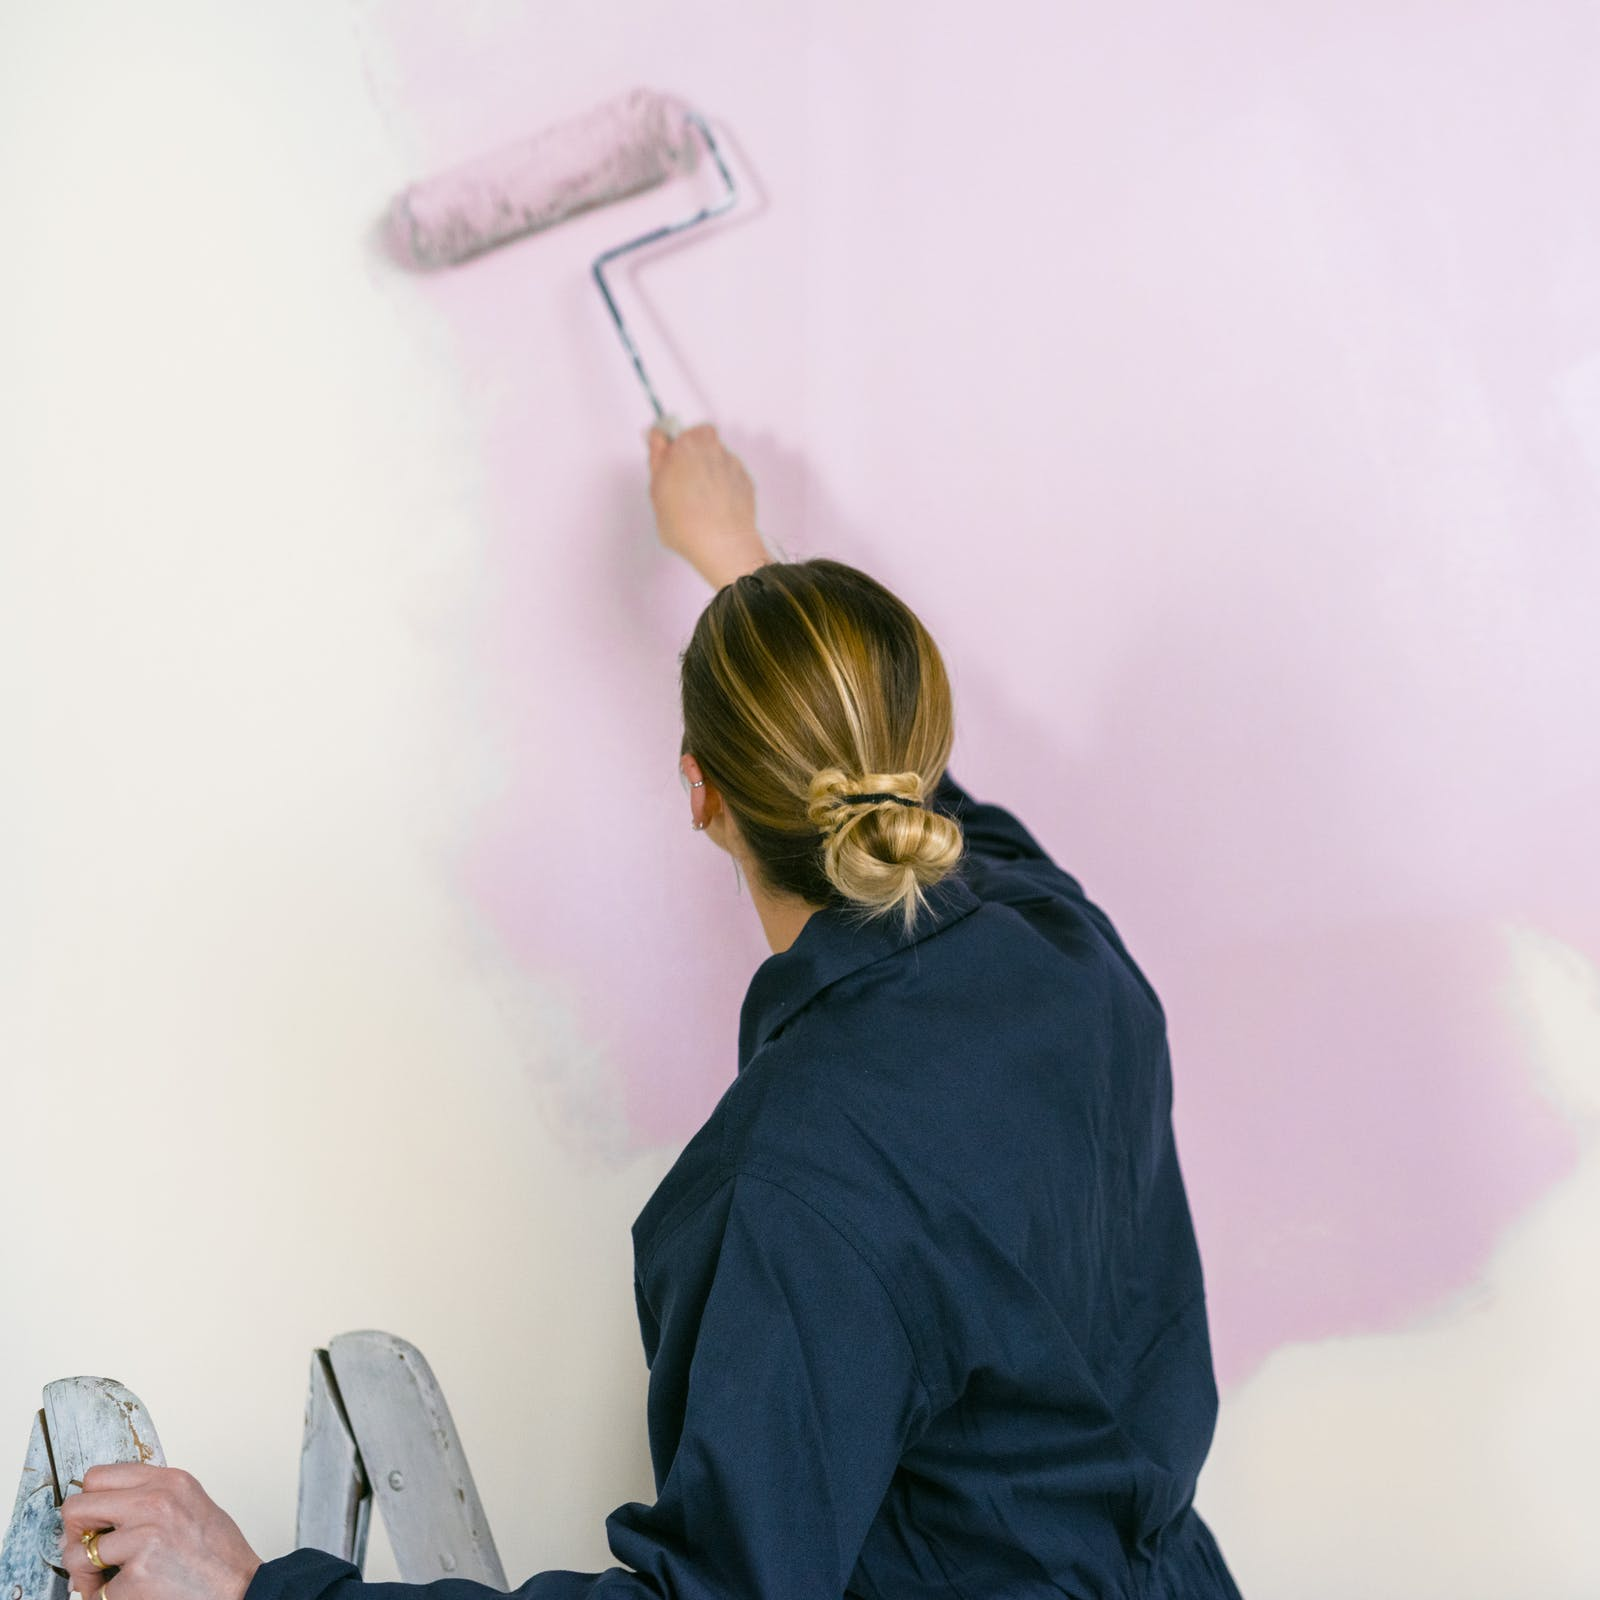 Blonde woman painting a pink paint on wall with a roller brush